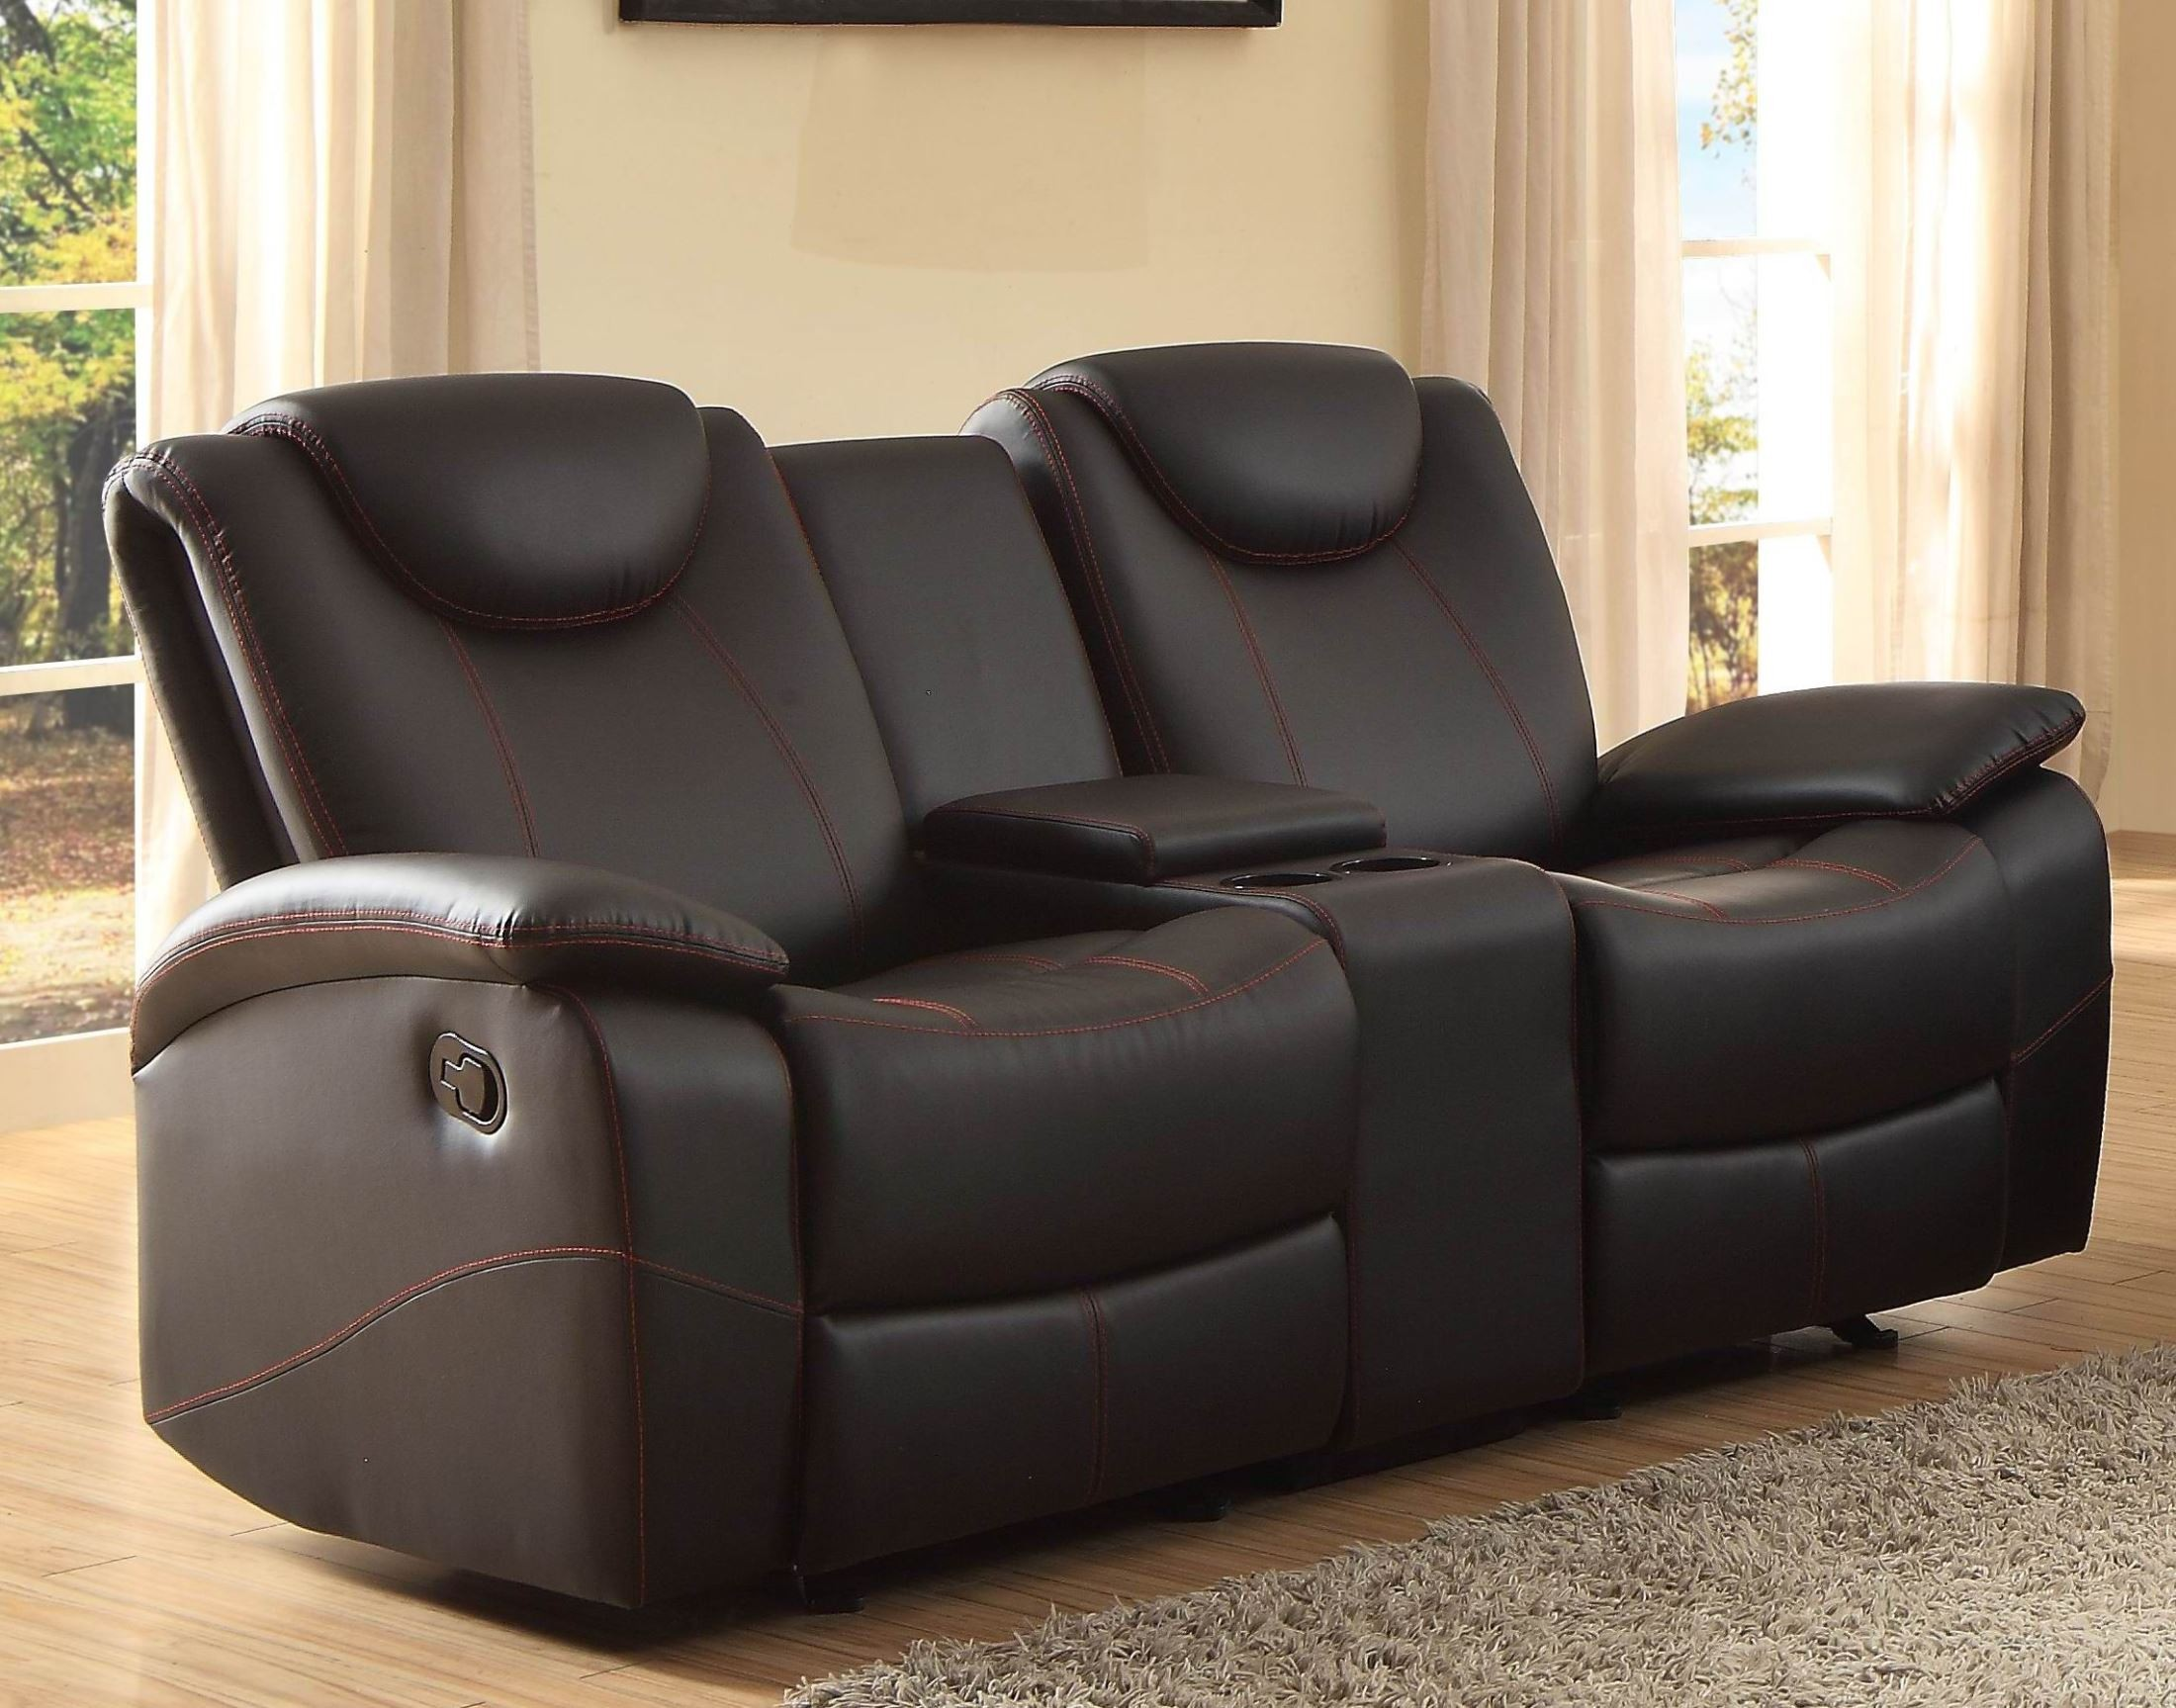 Talbot Black Double Glider Reclining Loveseat With Console From Homelegance 8524bk 2 Coleman